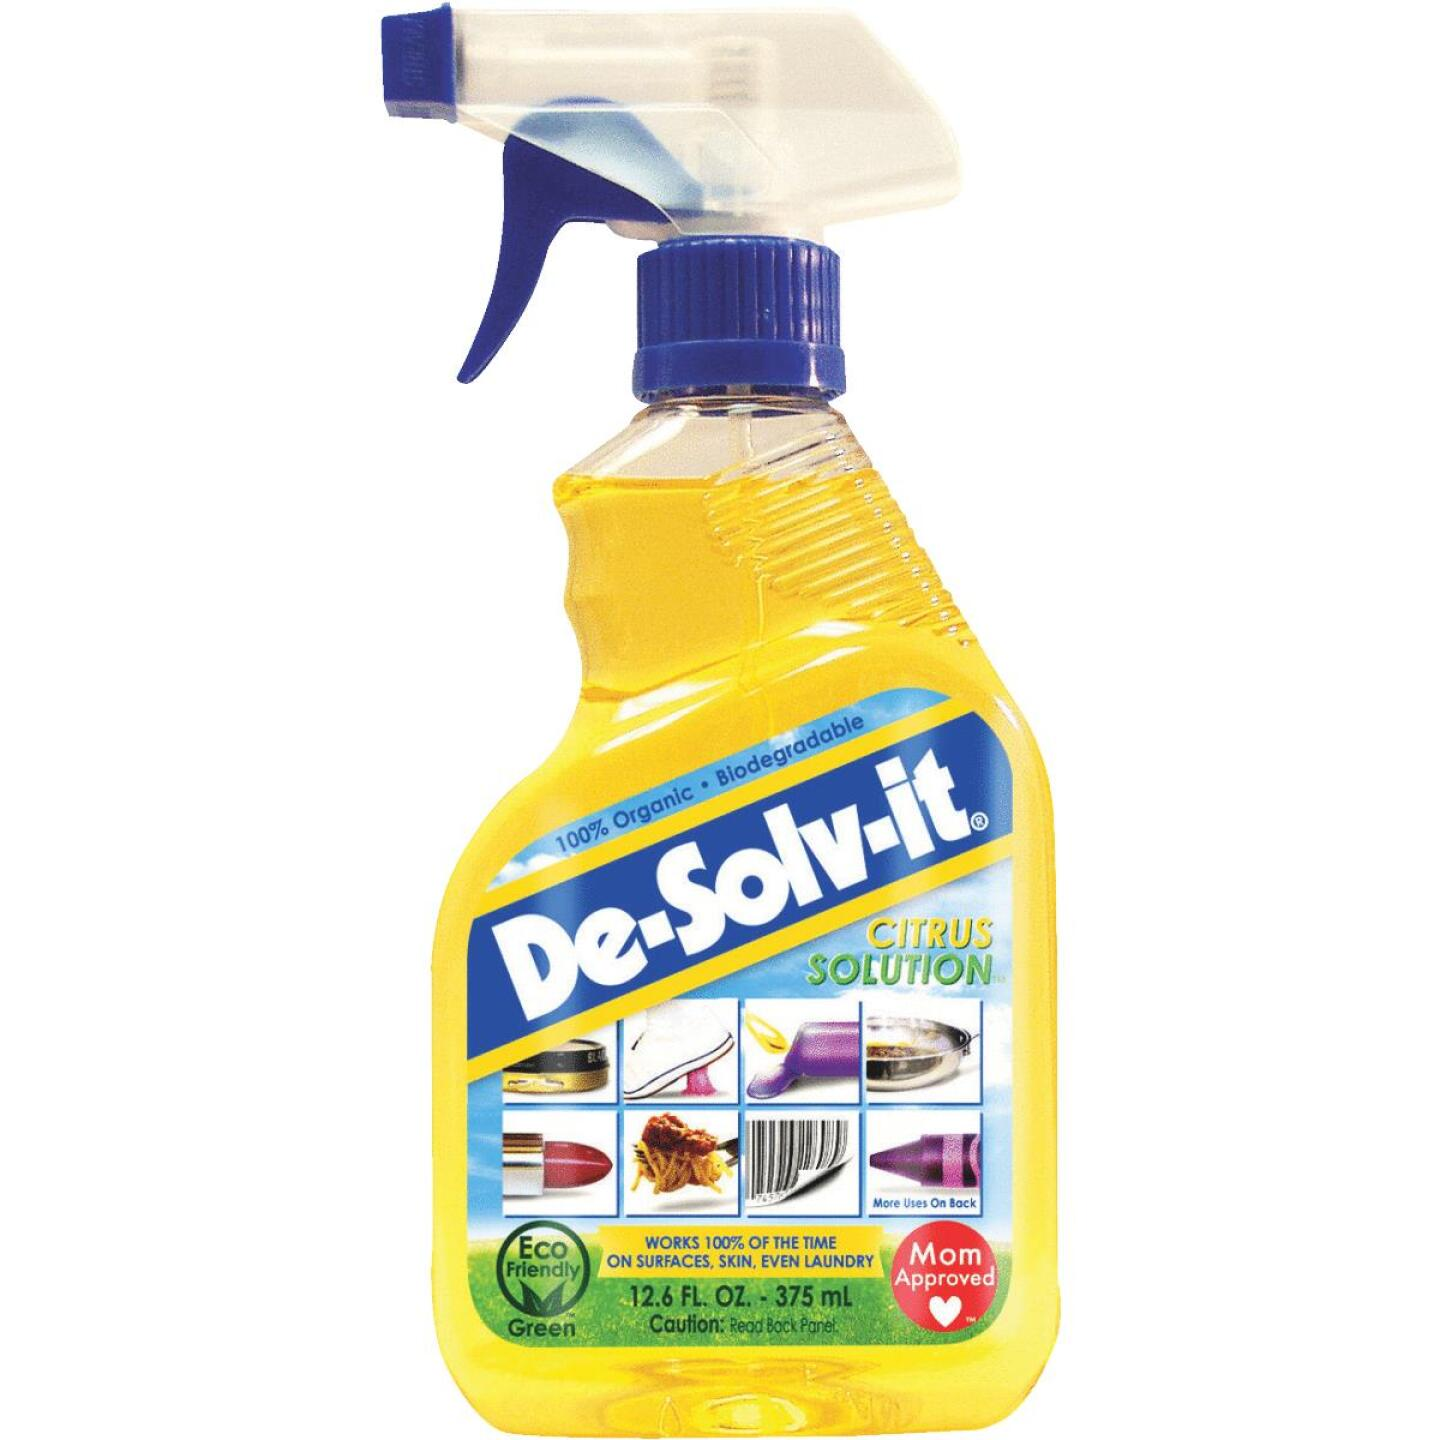 De-Solv-it 12 Oz. Household Cleaner Adhesive Remover Image 1